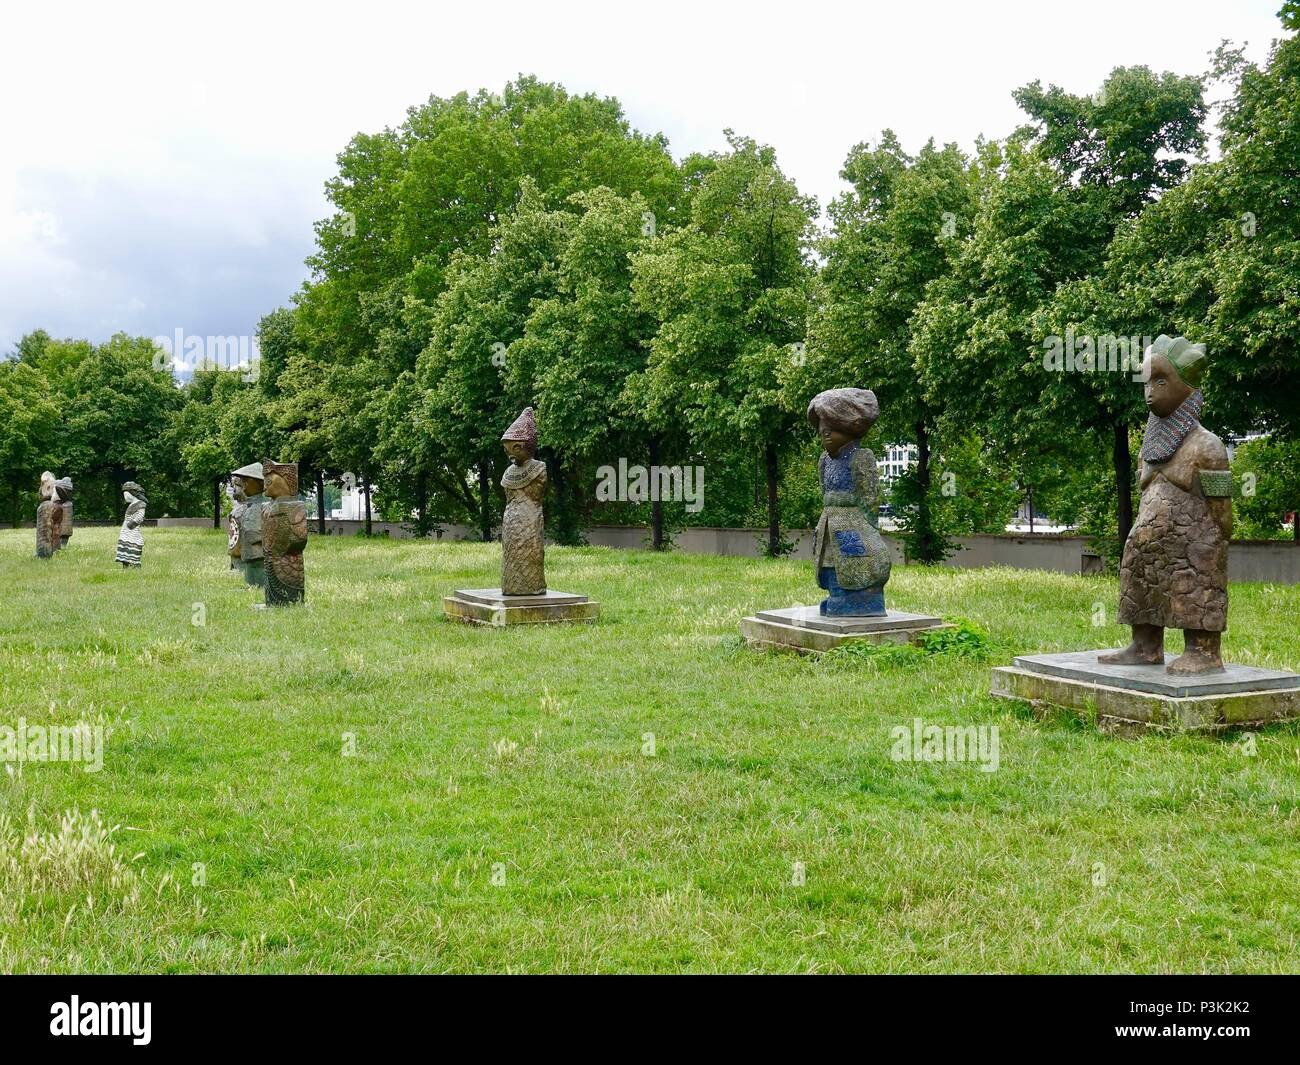 Some of the statues of the work, 'Children of the World,' public art by artist Rachid Khimoune, Bercy Park, Paris, France - Stock Image